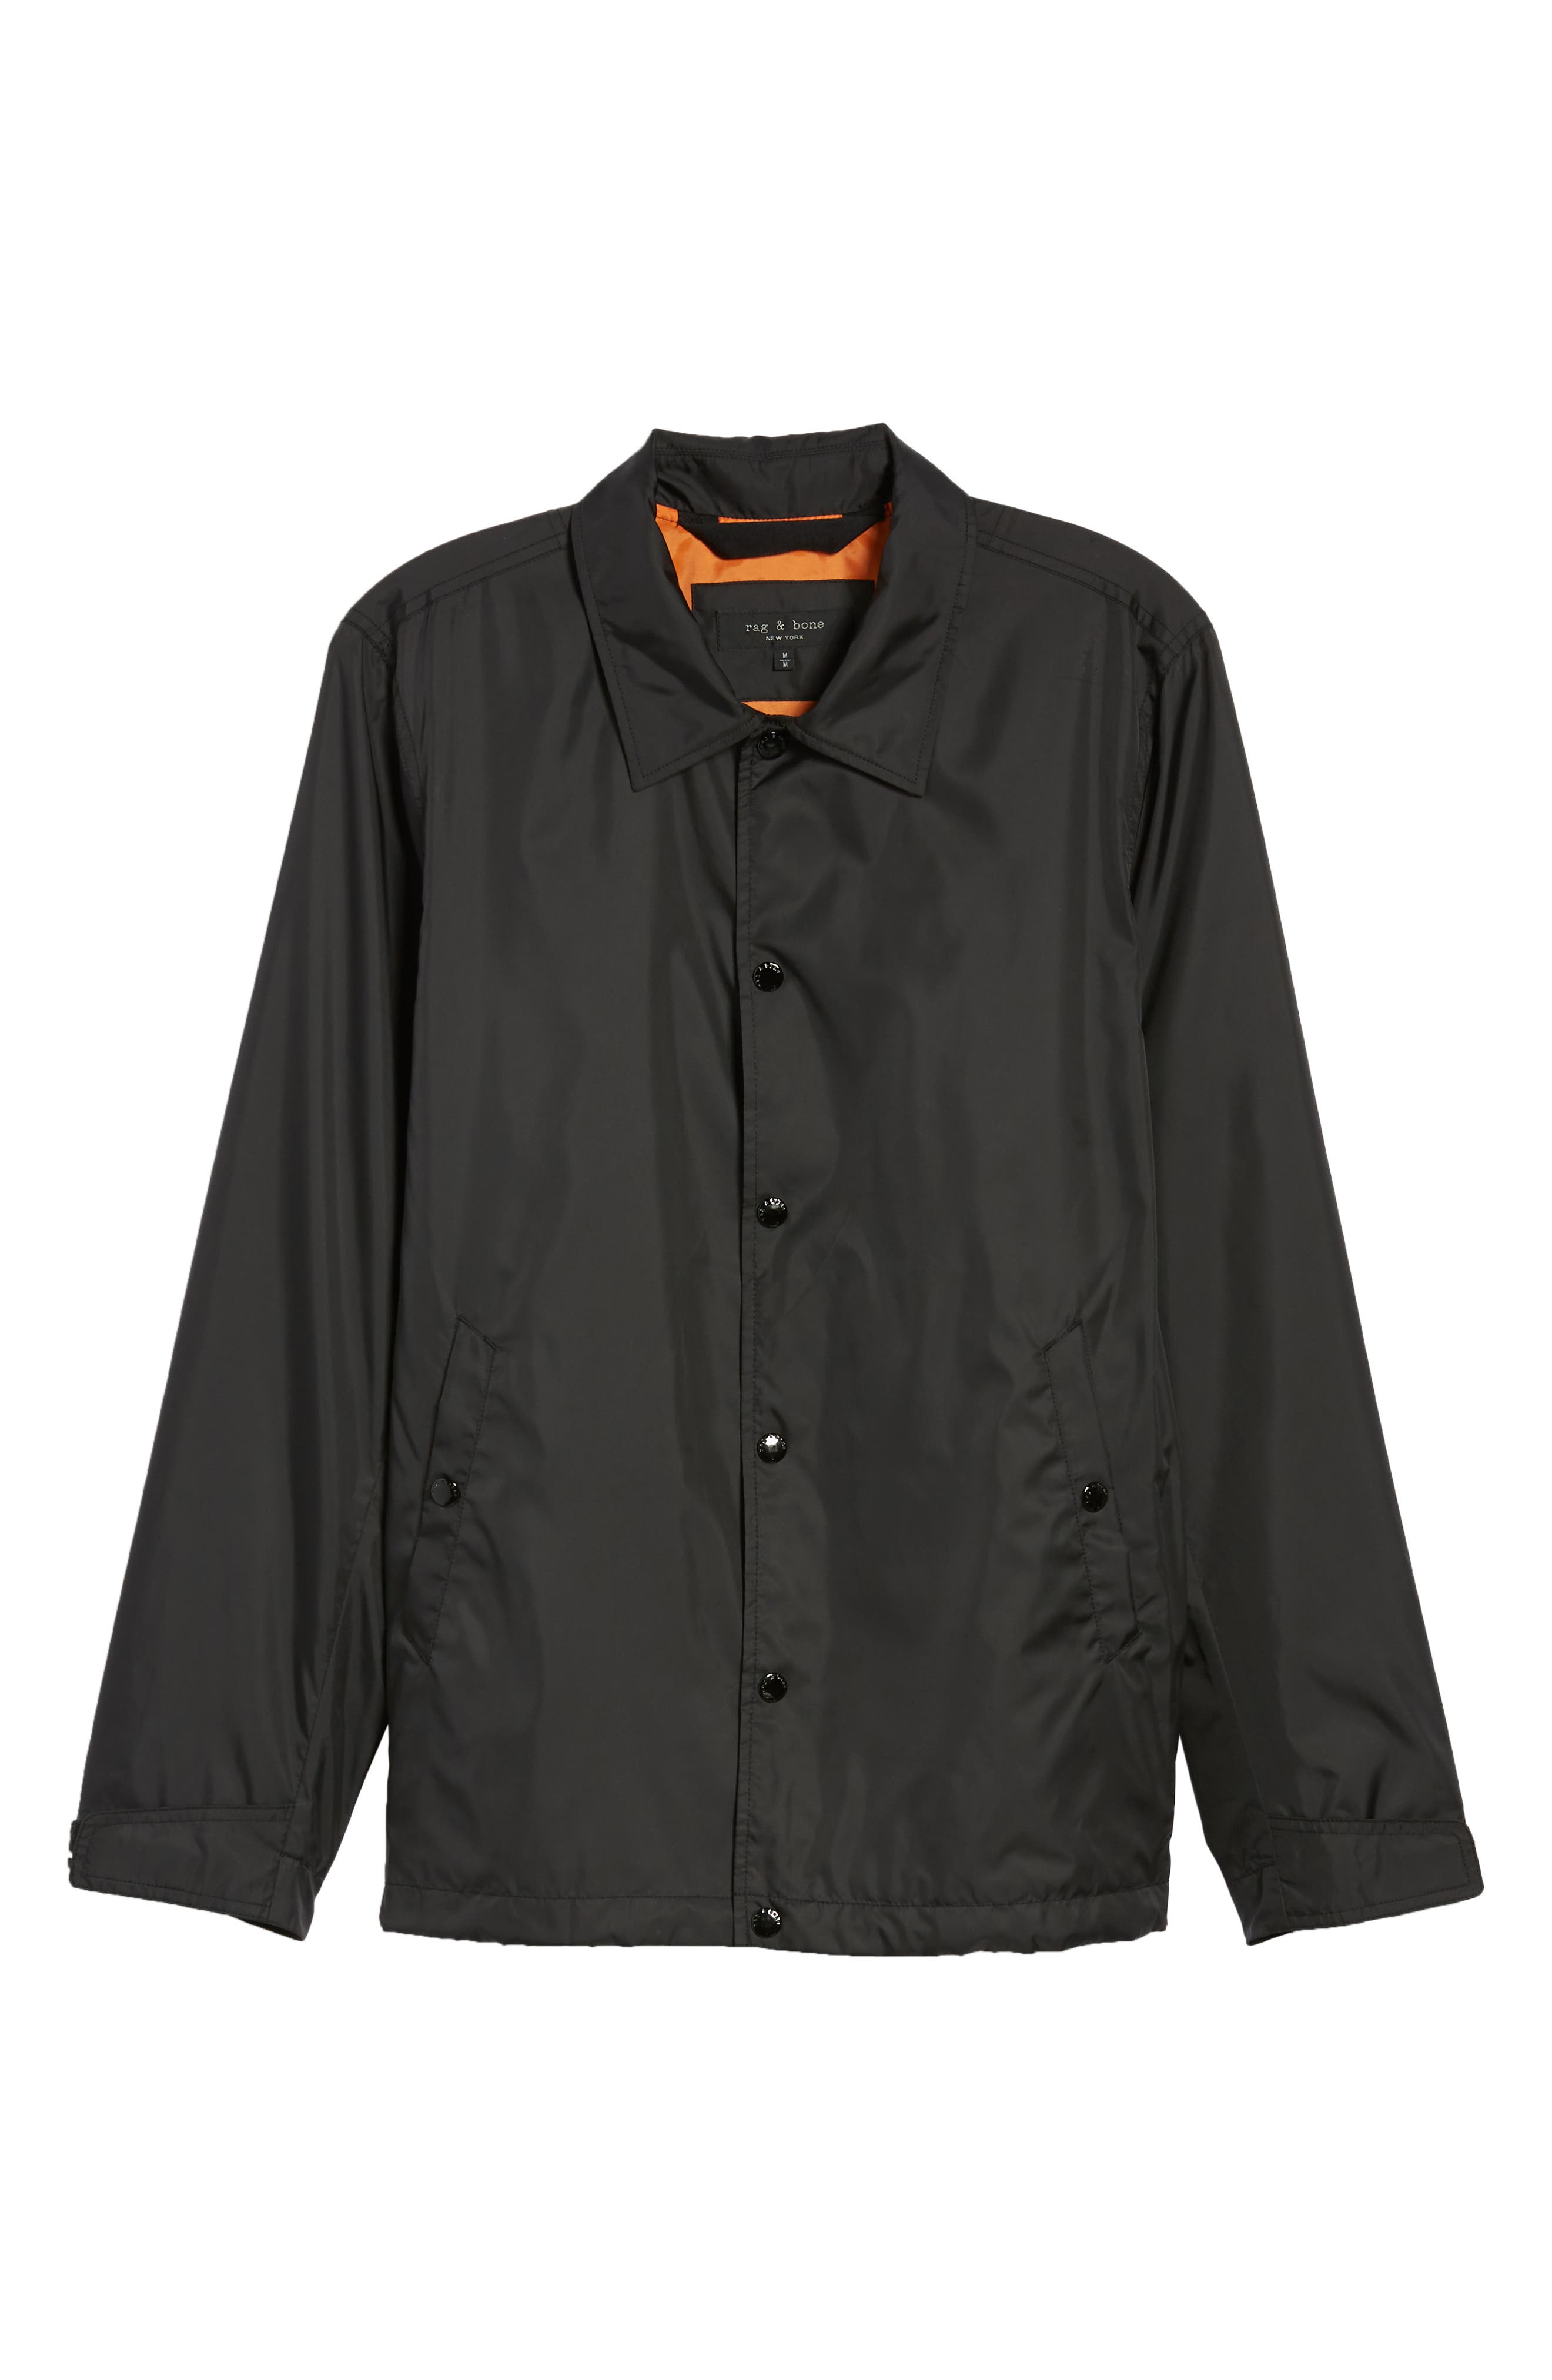 RAG & BONE,                             Coaches Jacket,                             Alternate thumbnail 6, color,                             001